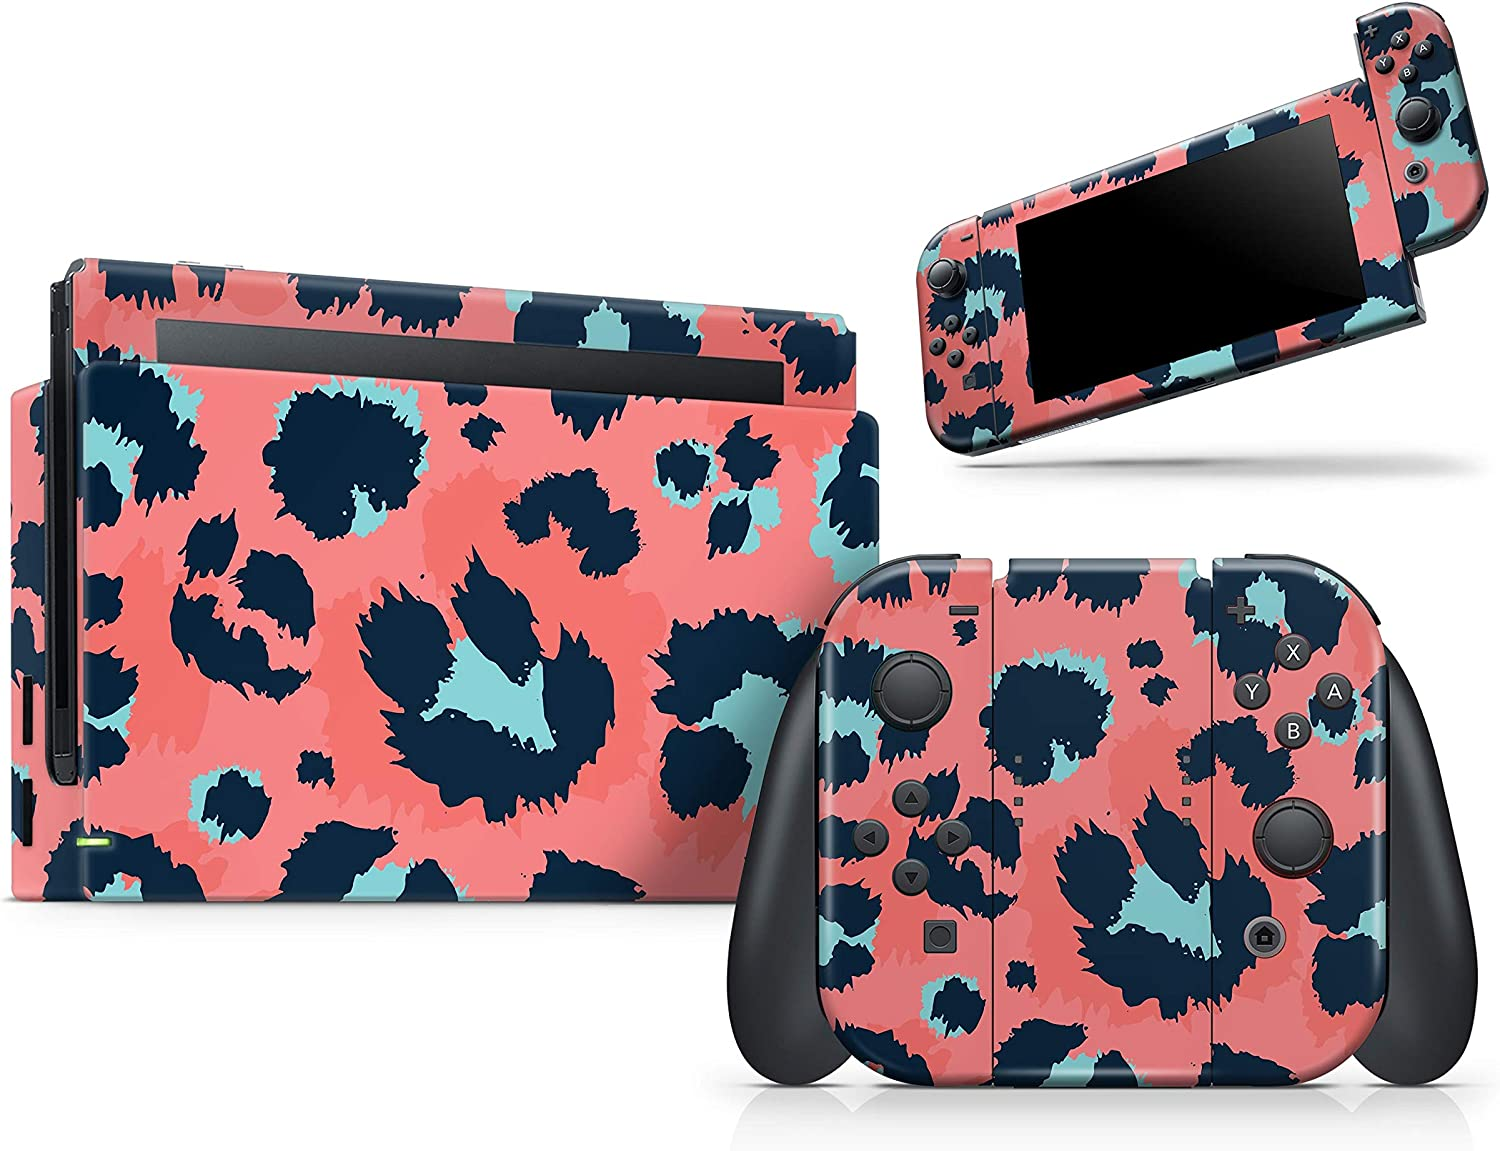 Design Chicago Mall Over item handling ☆ Skinz - Compatible with Lite Nintendo Skin Switch Decal